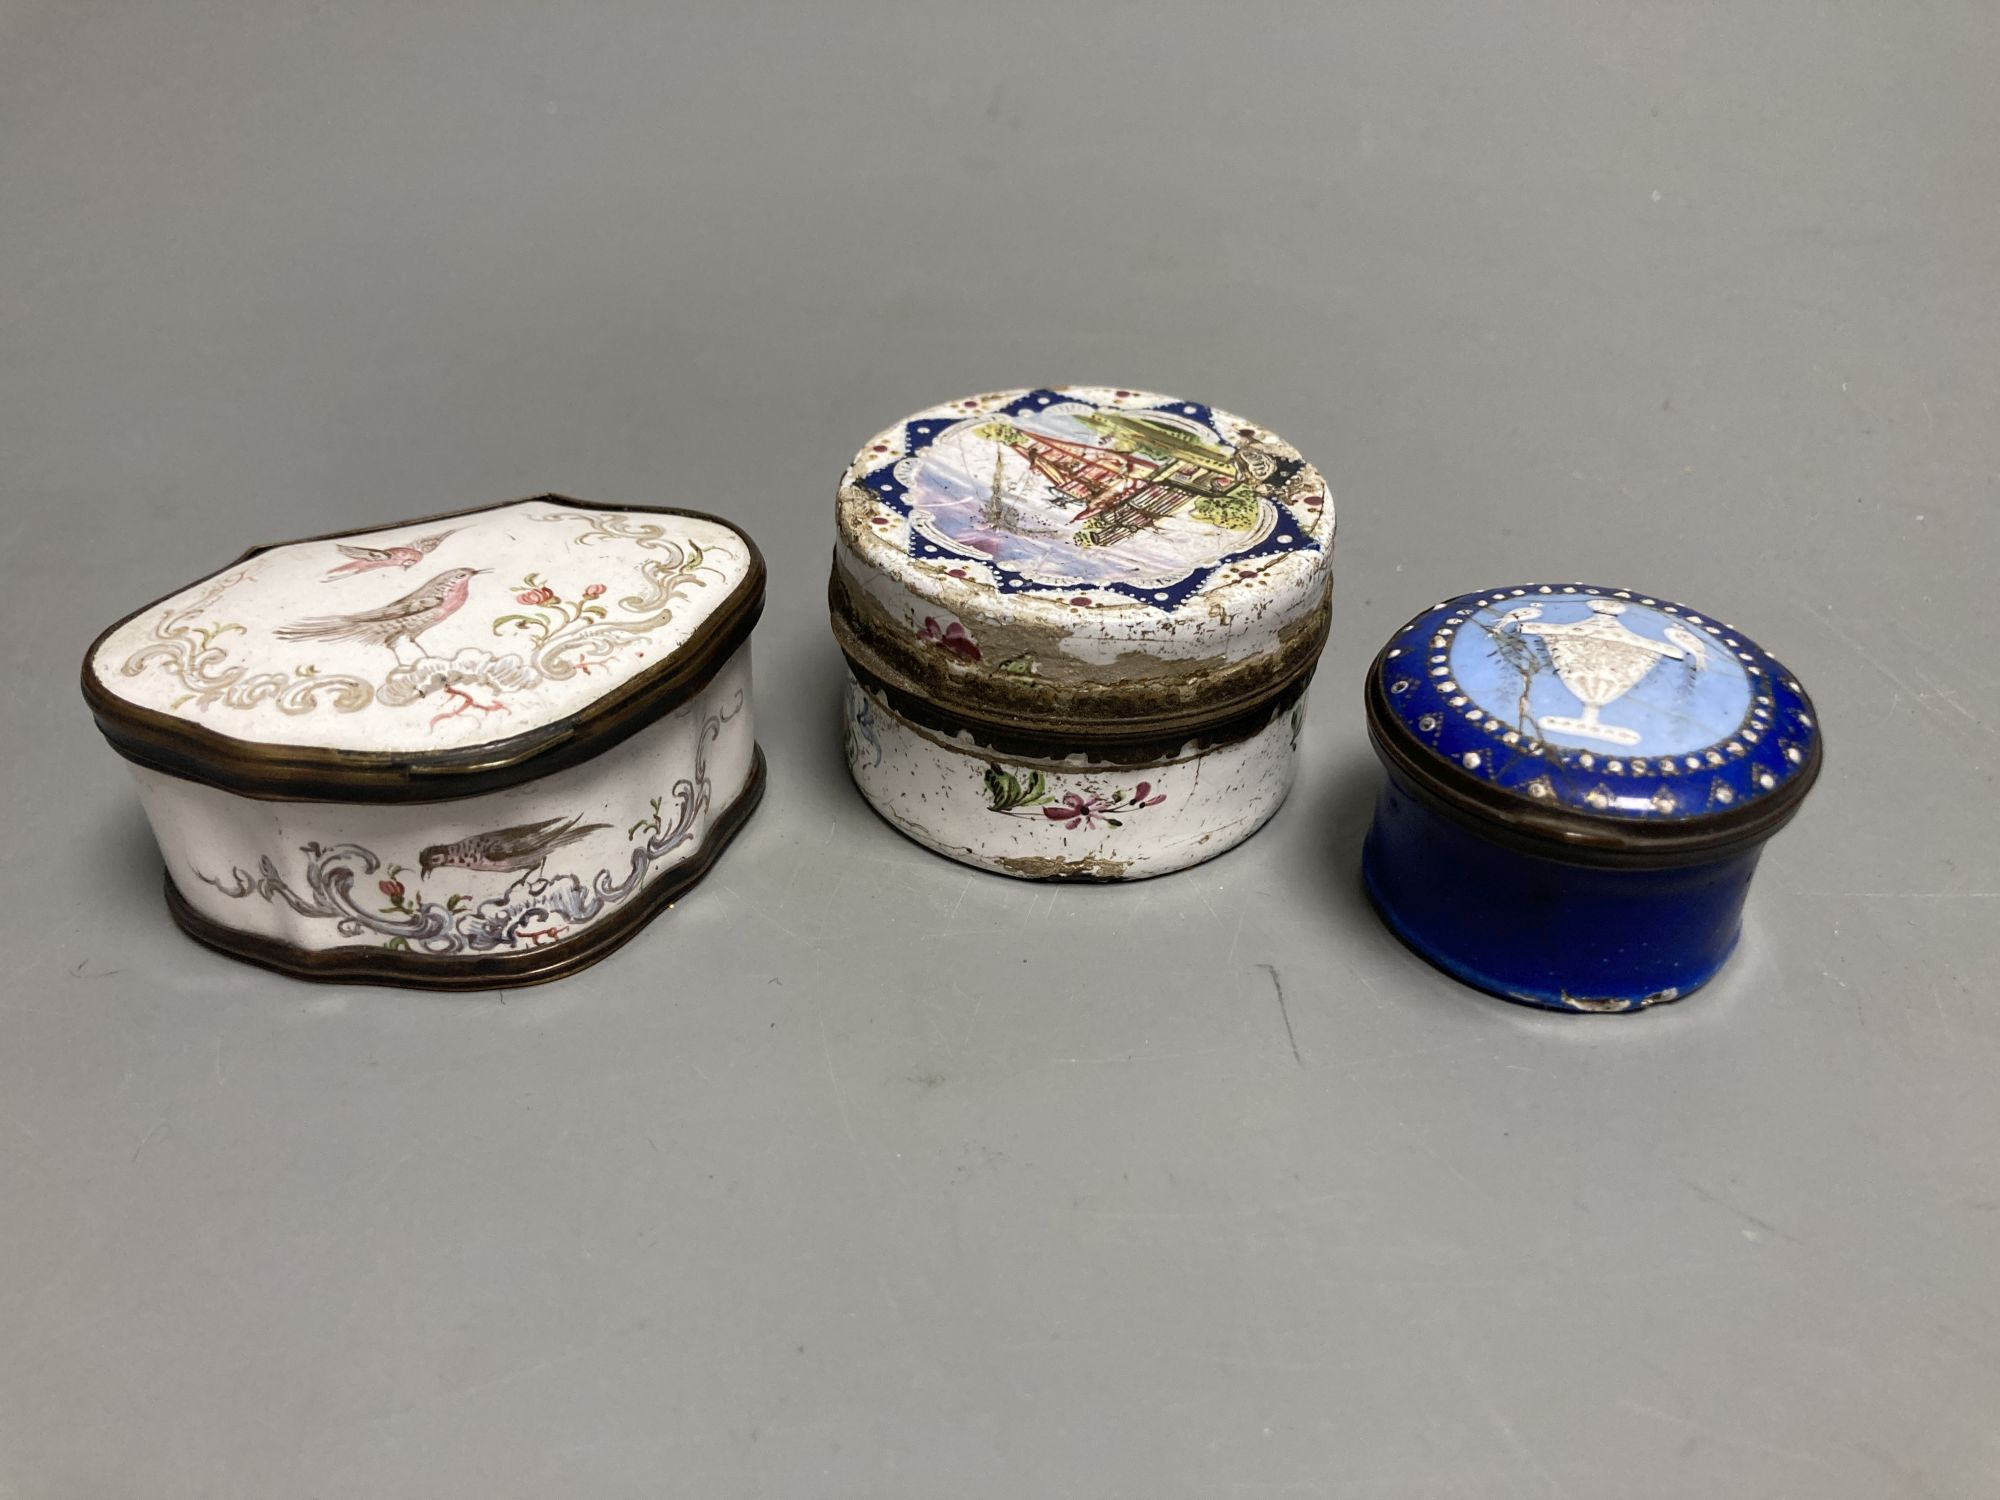 An 18th century white enamelled box painted with a palace, 5cm., a cartouche shaped box decorated